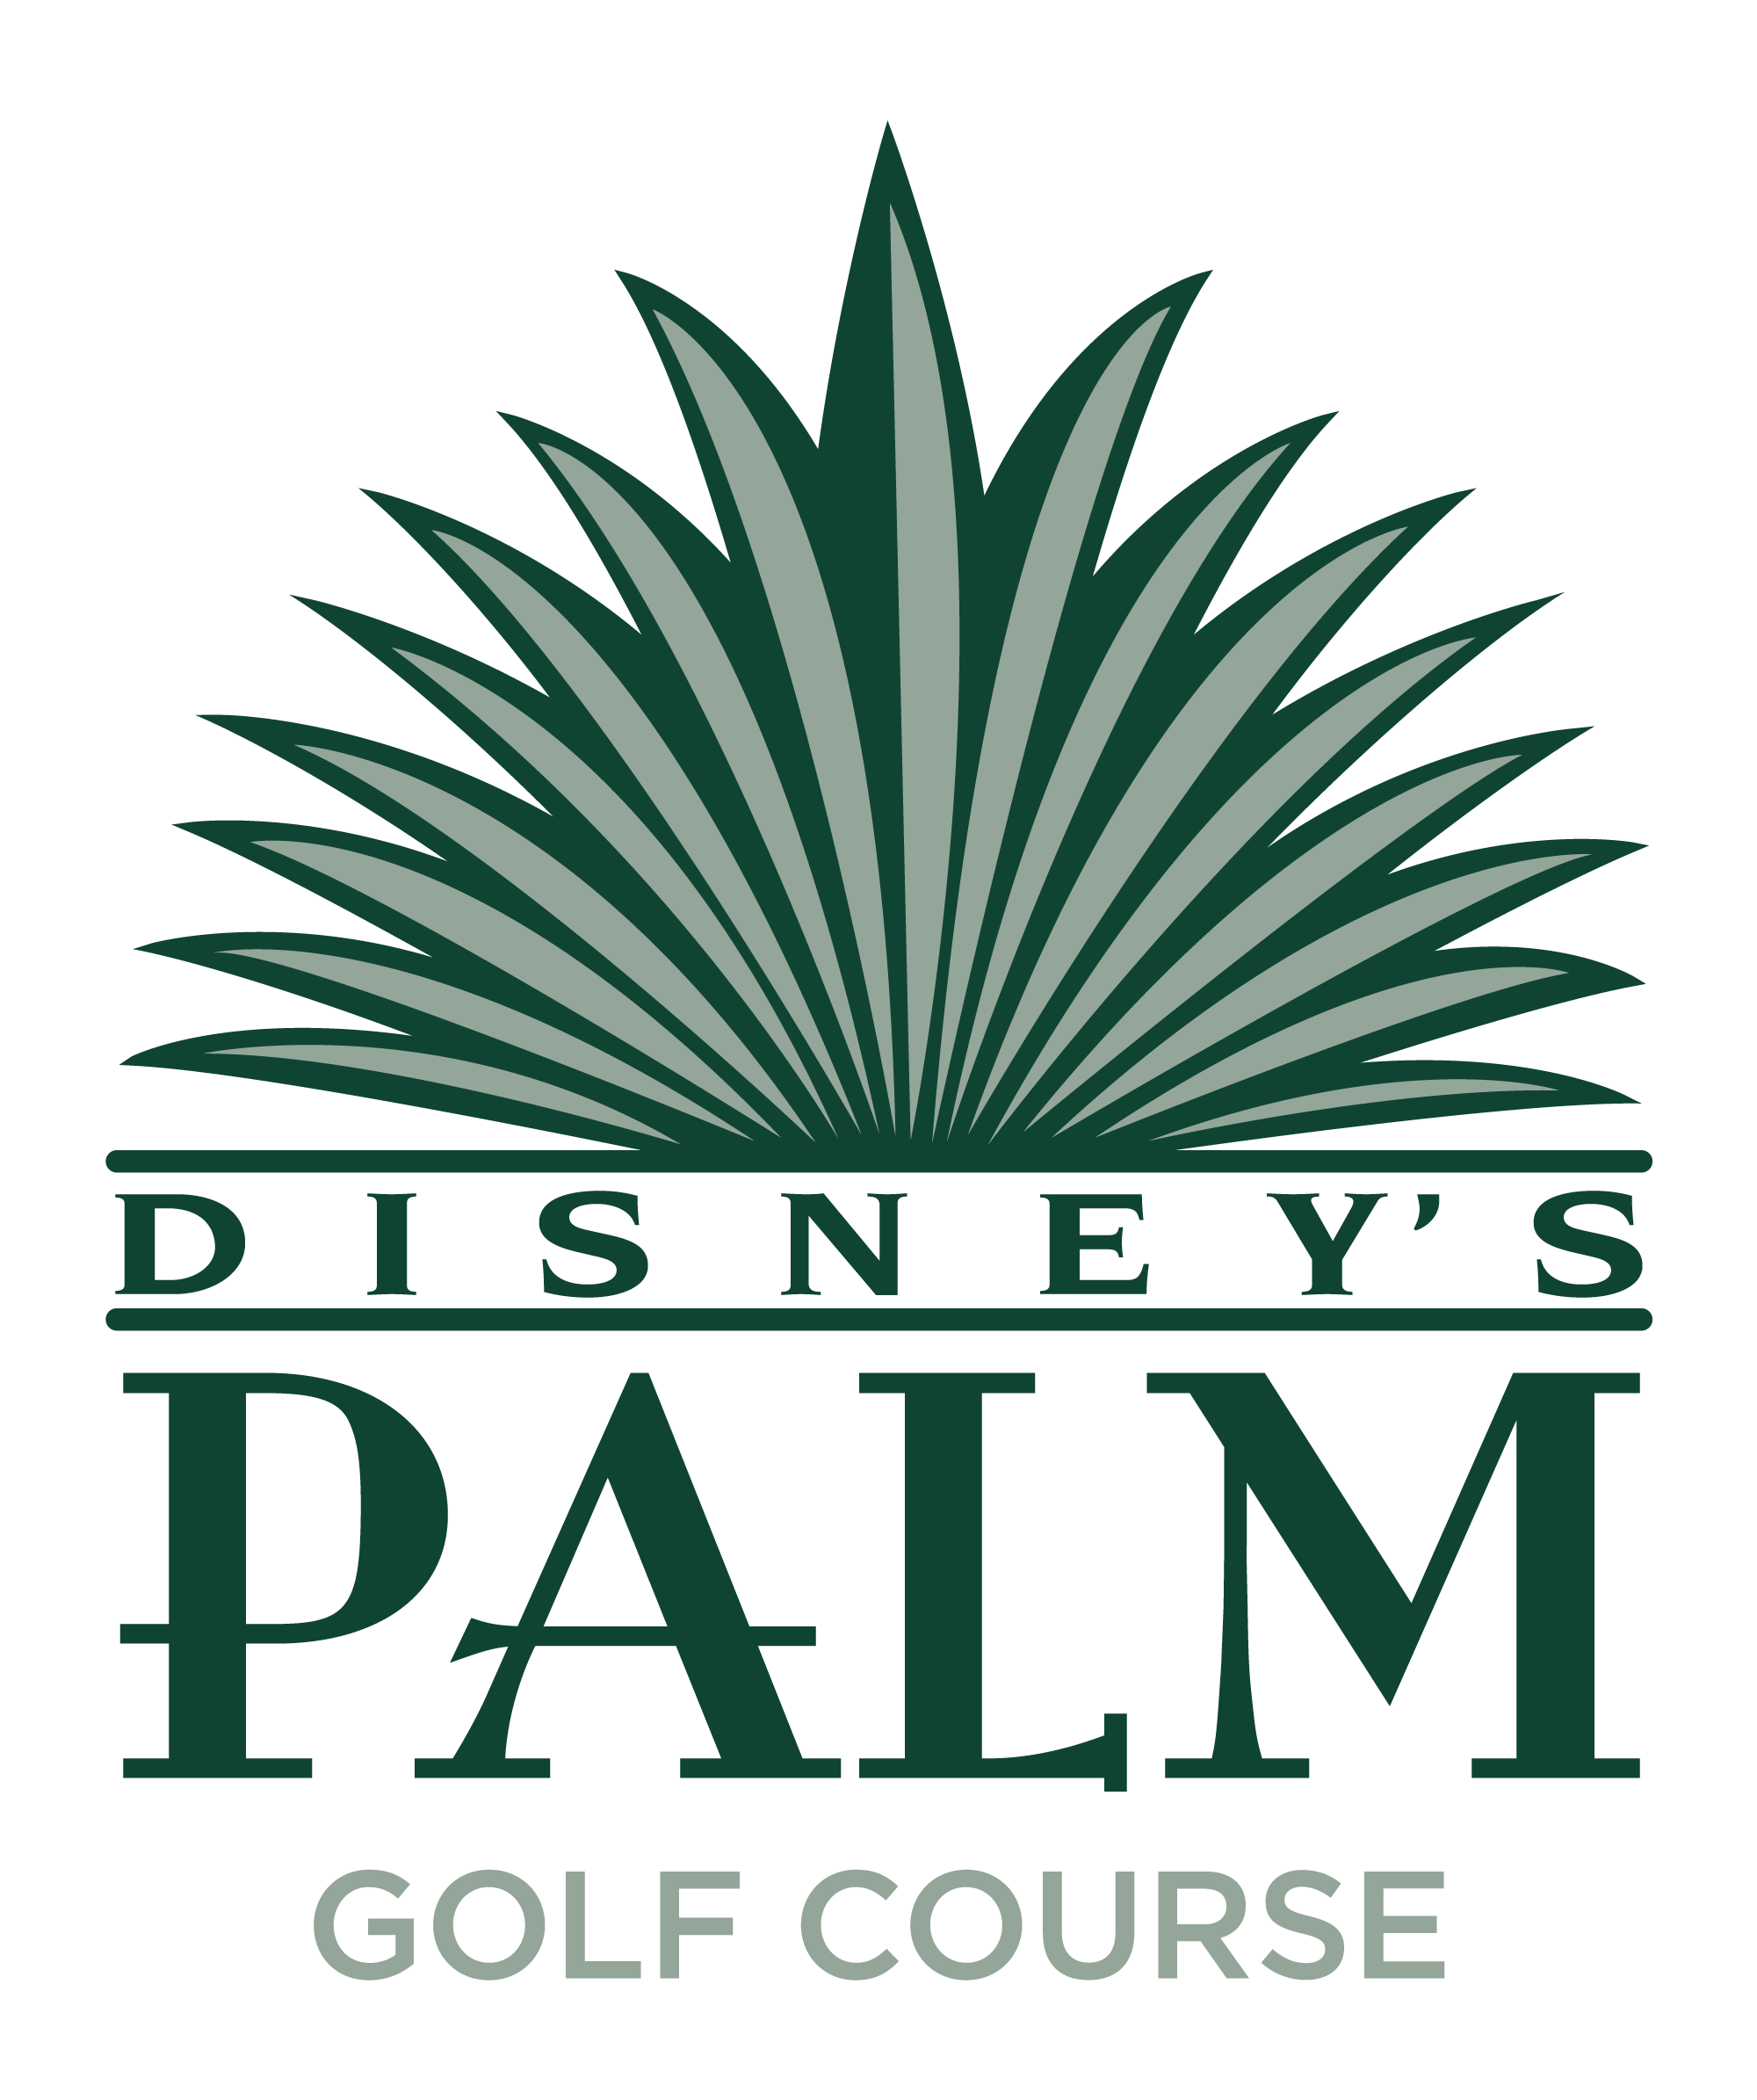 disney golf palm logo